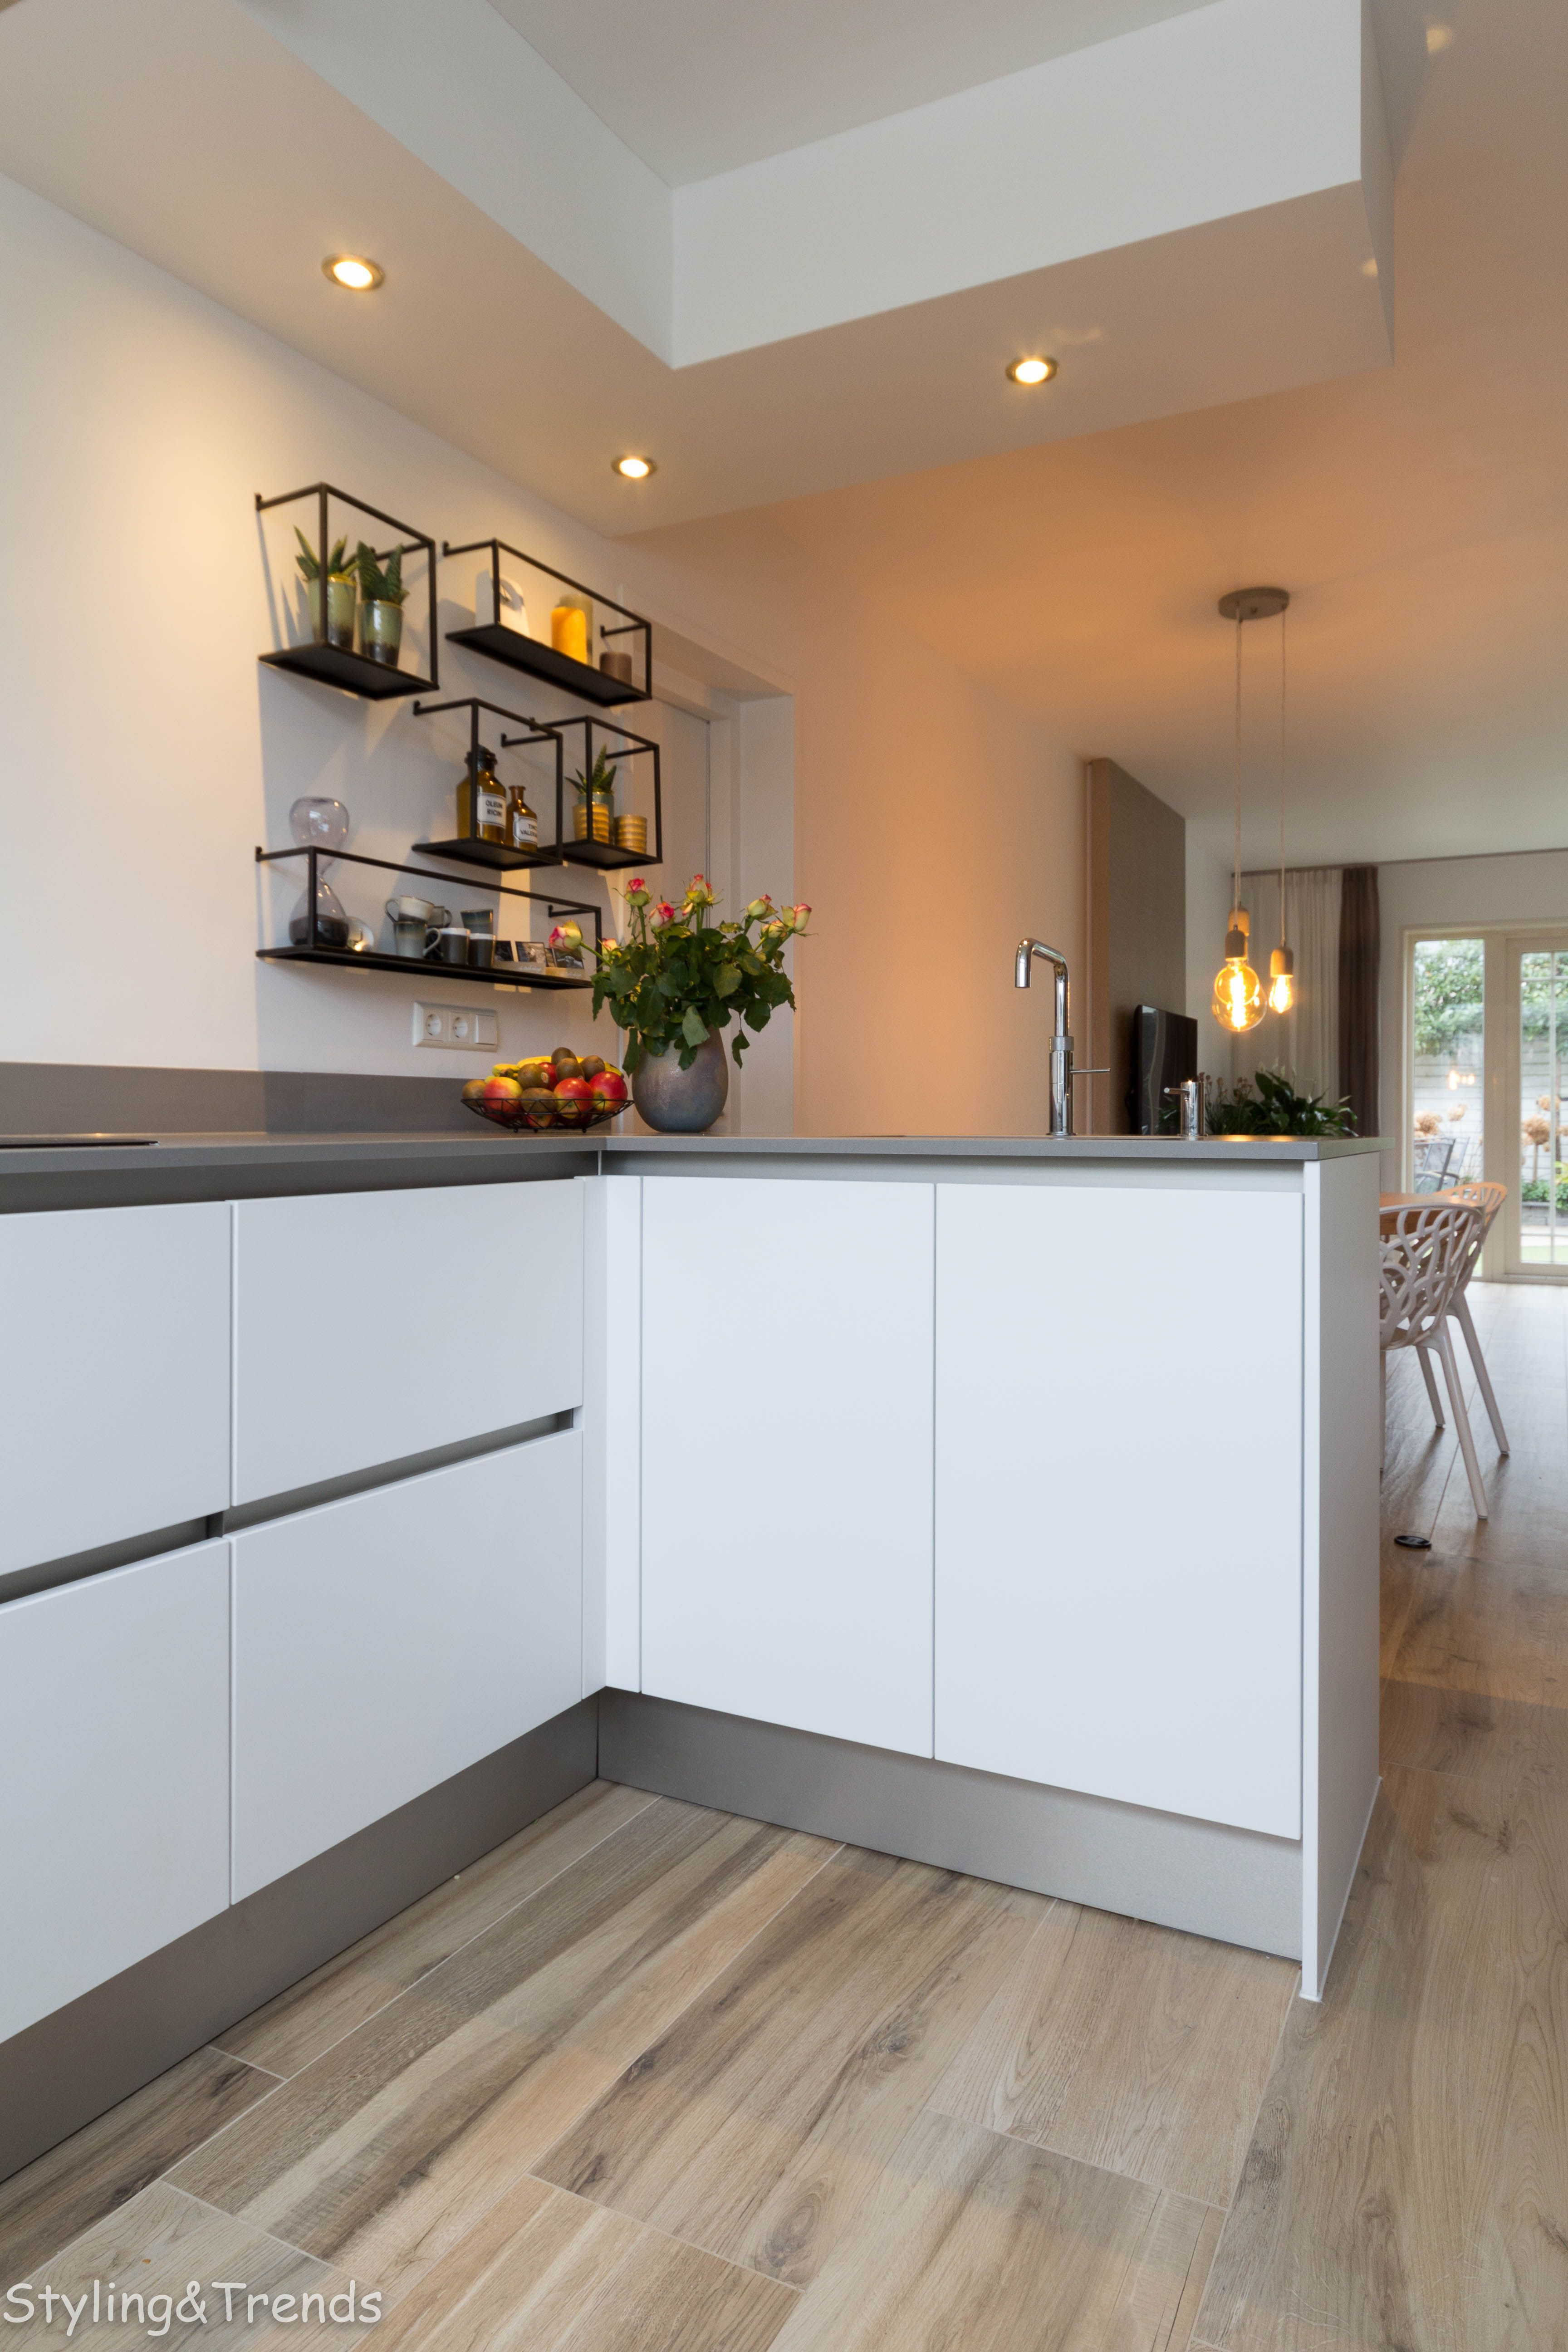 27 simple small kitchen ideas to maximize space trick tips kitchen remodel cost kitchen on kitchen ideas simple id=69549